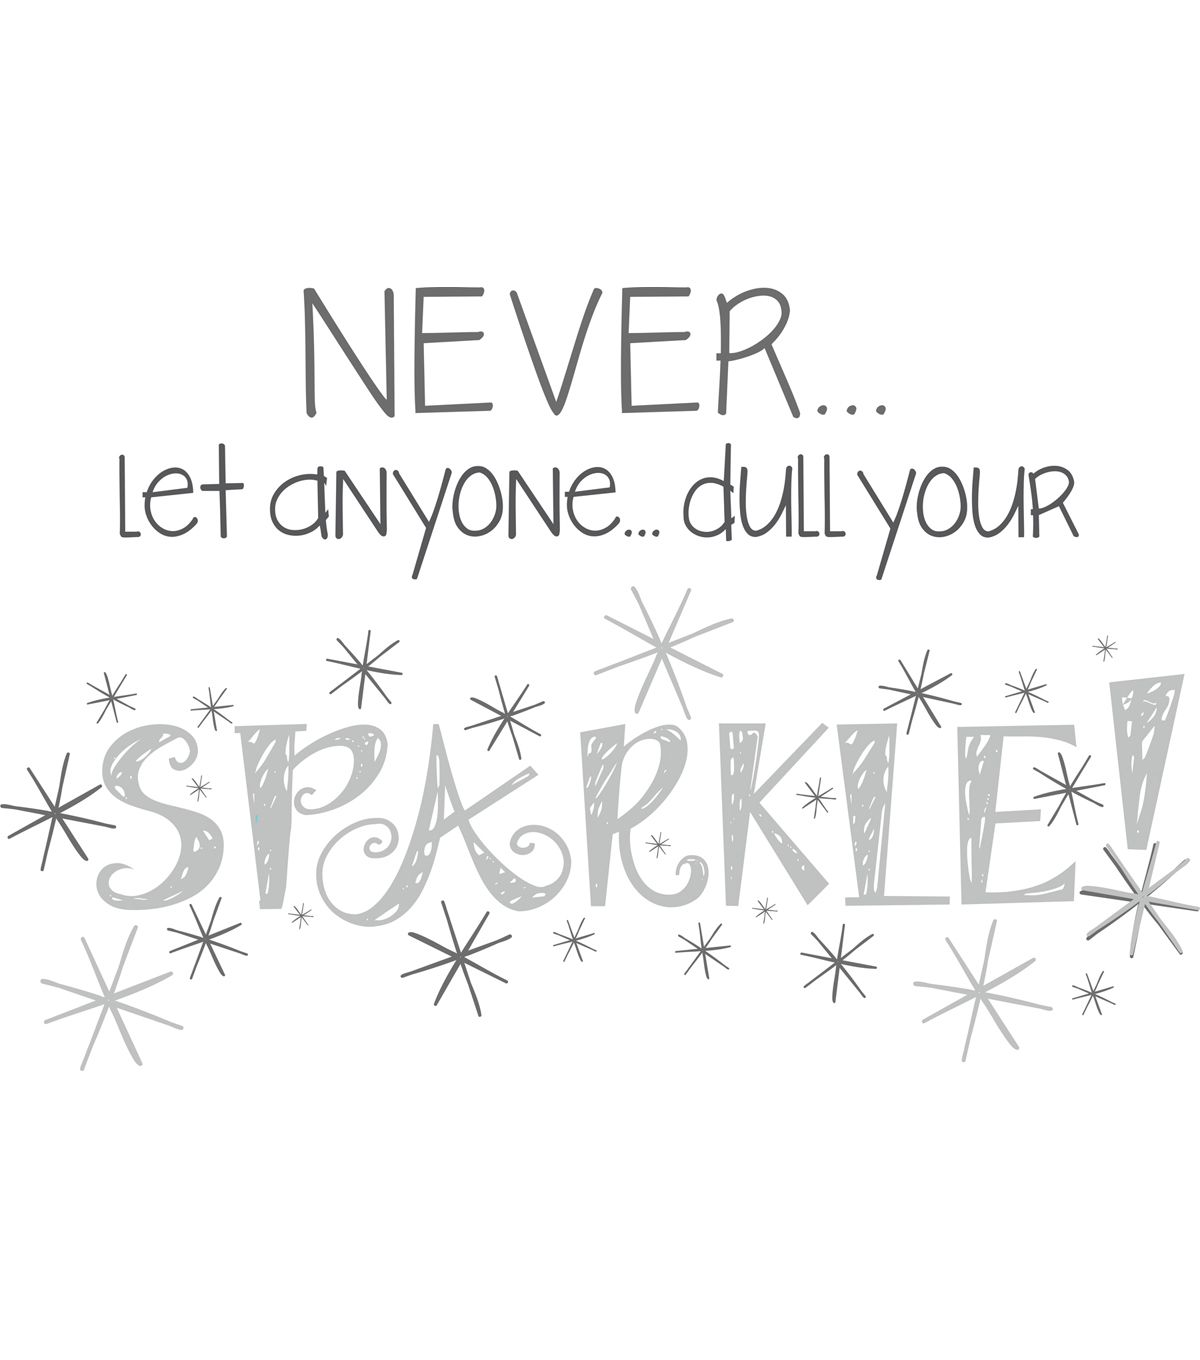 Wall pops sparkle wall quote decals 23 x 15 art journals and wall pops sparkle wall quote decals amipublicfo Images